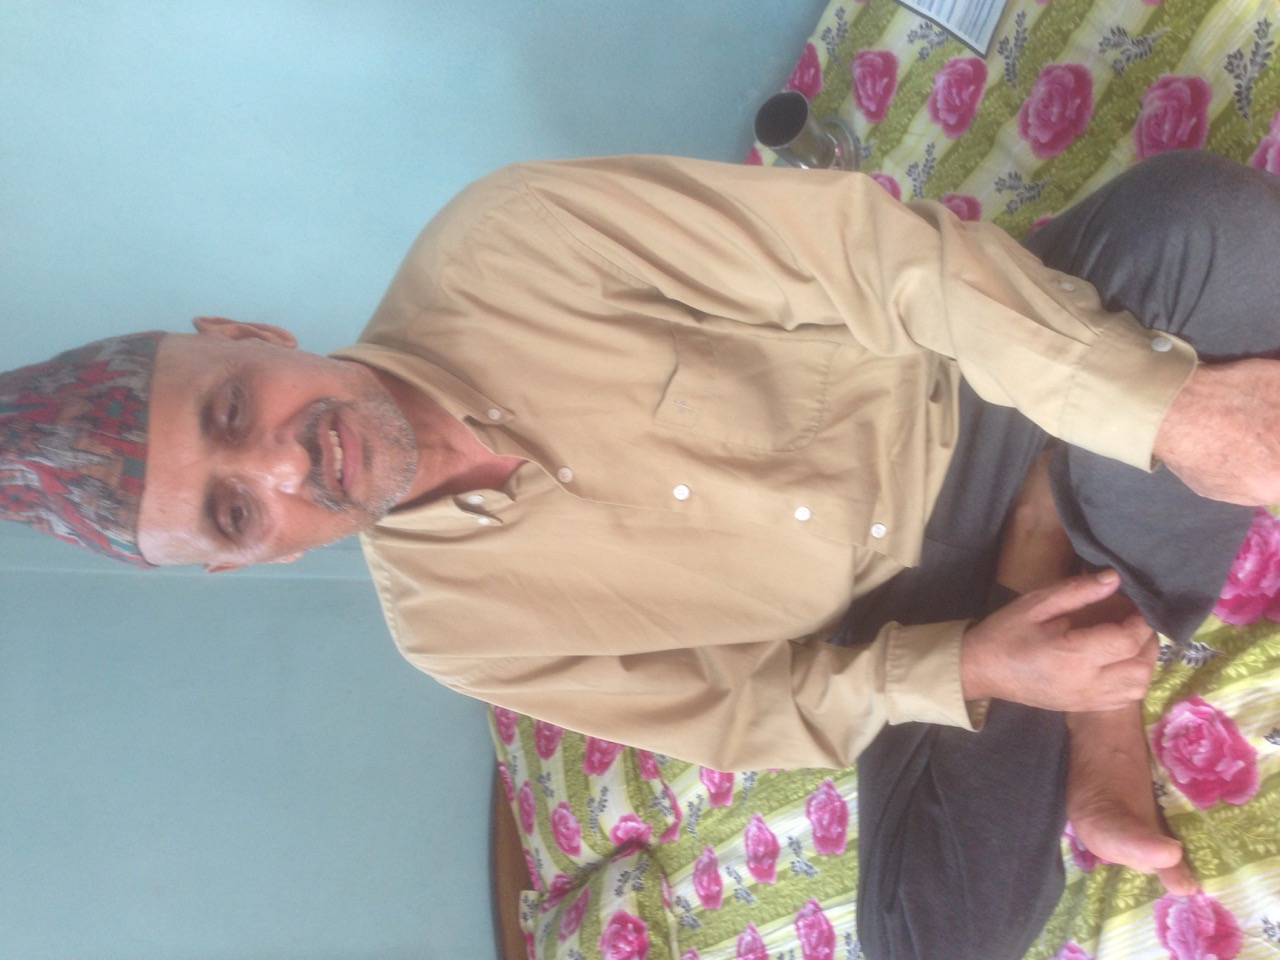 Him Prasad Gautam undergone treatment of Brain Cancer